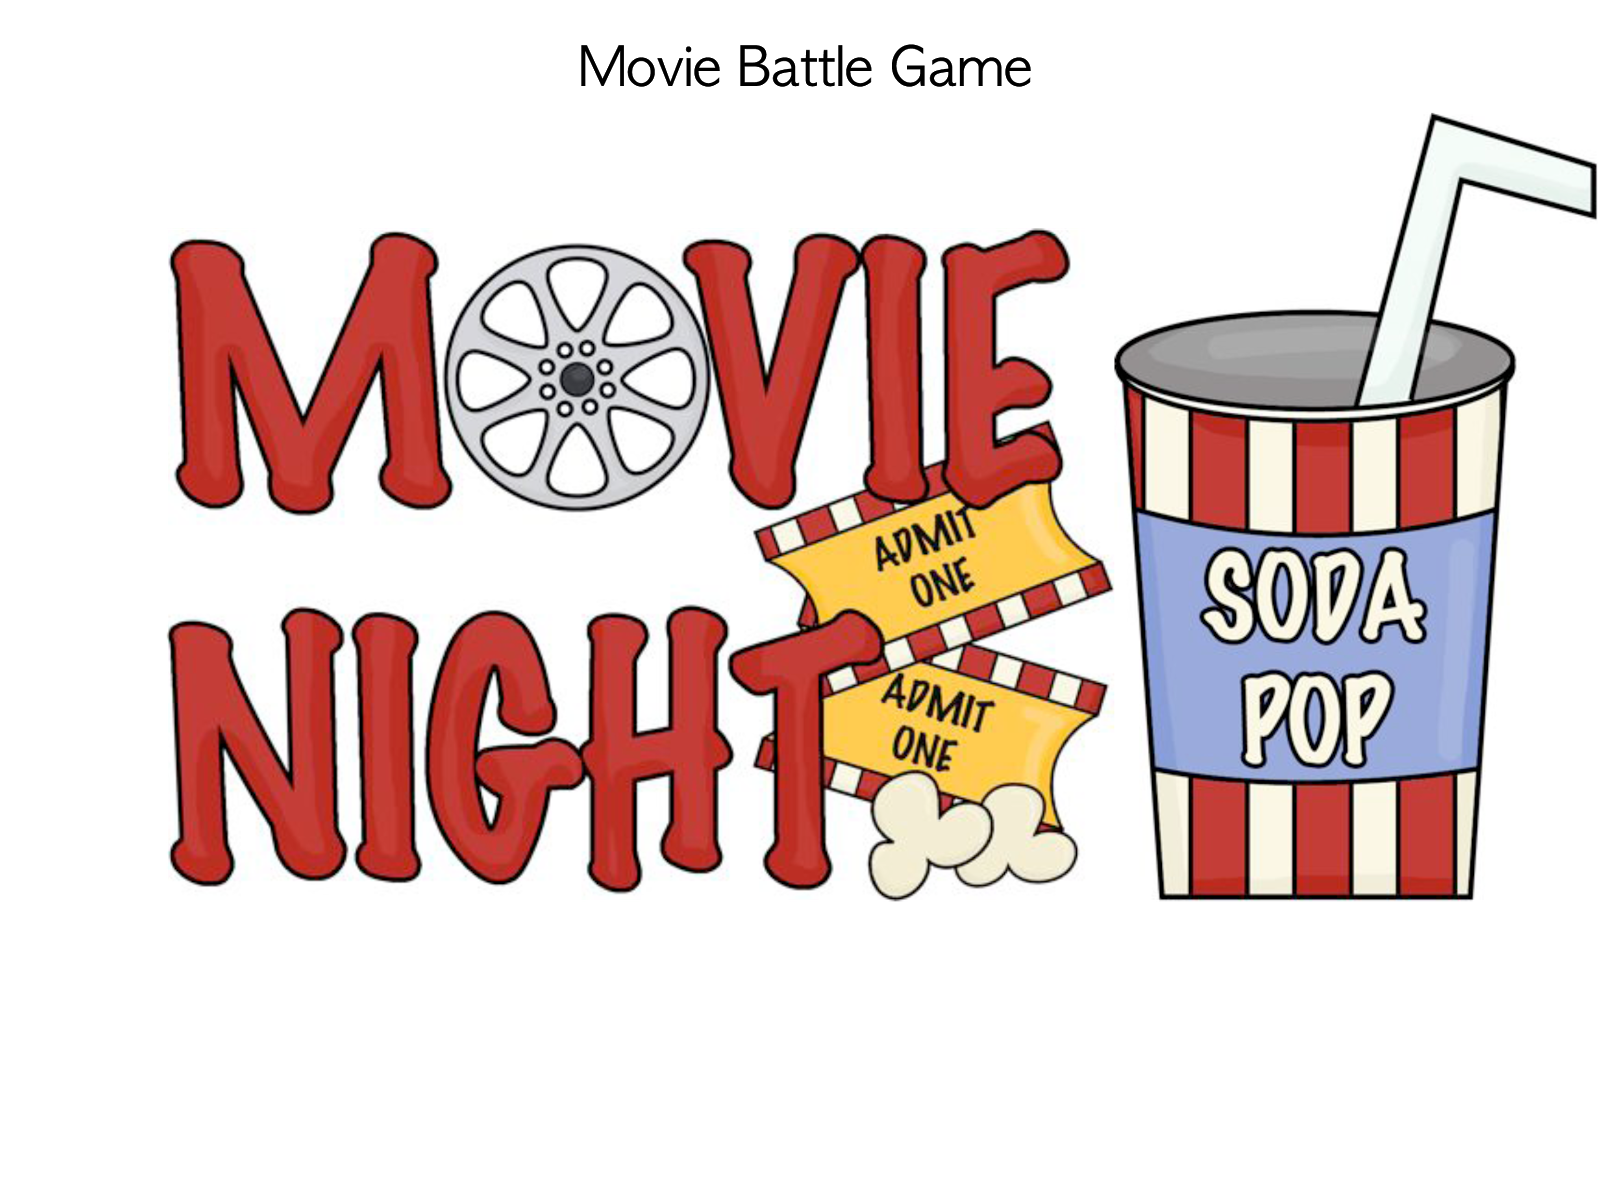 clipart of movie night - photo #12